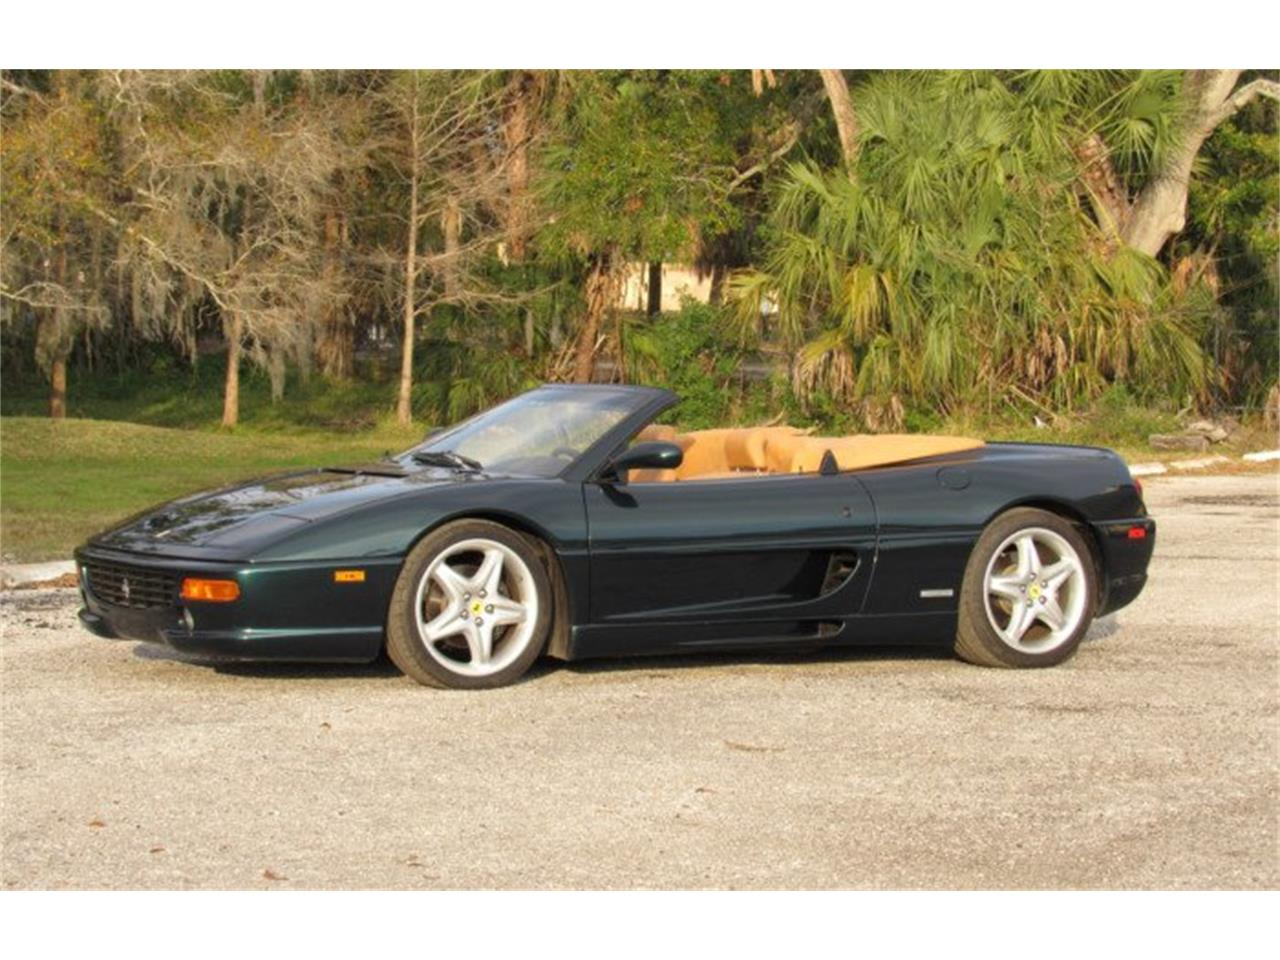 Large Picture of 1995 Ferrari F355 located in Florida Auction Vehicle Offered by Premier Auction Group - PH0T